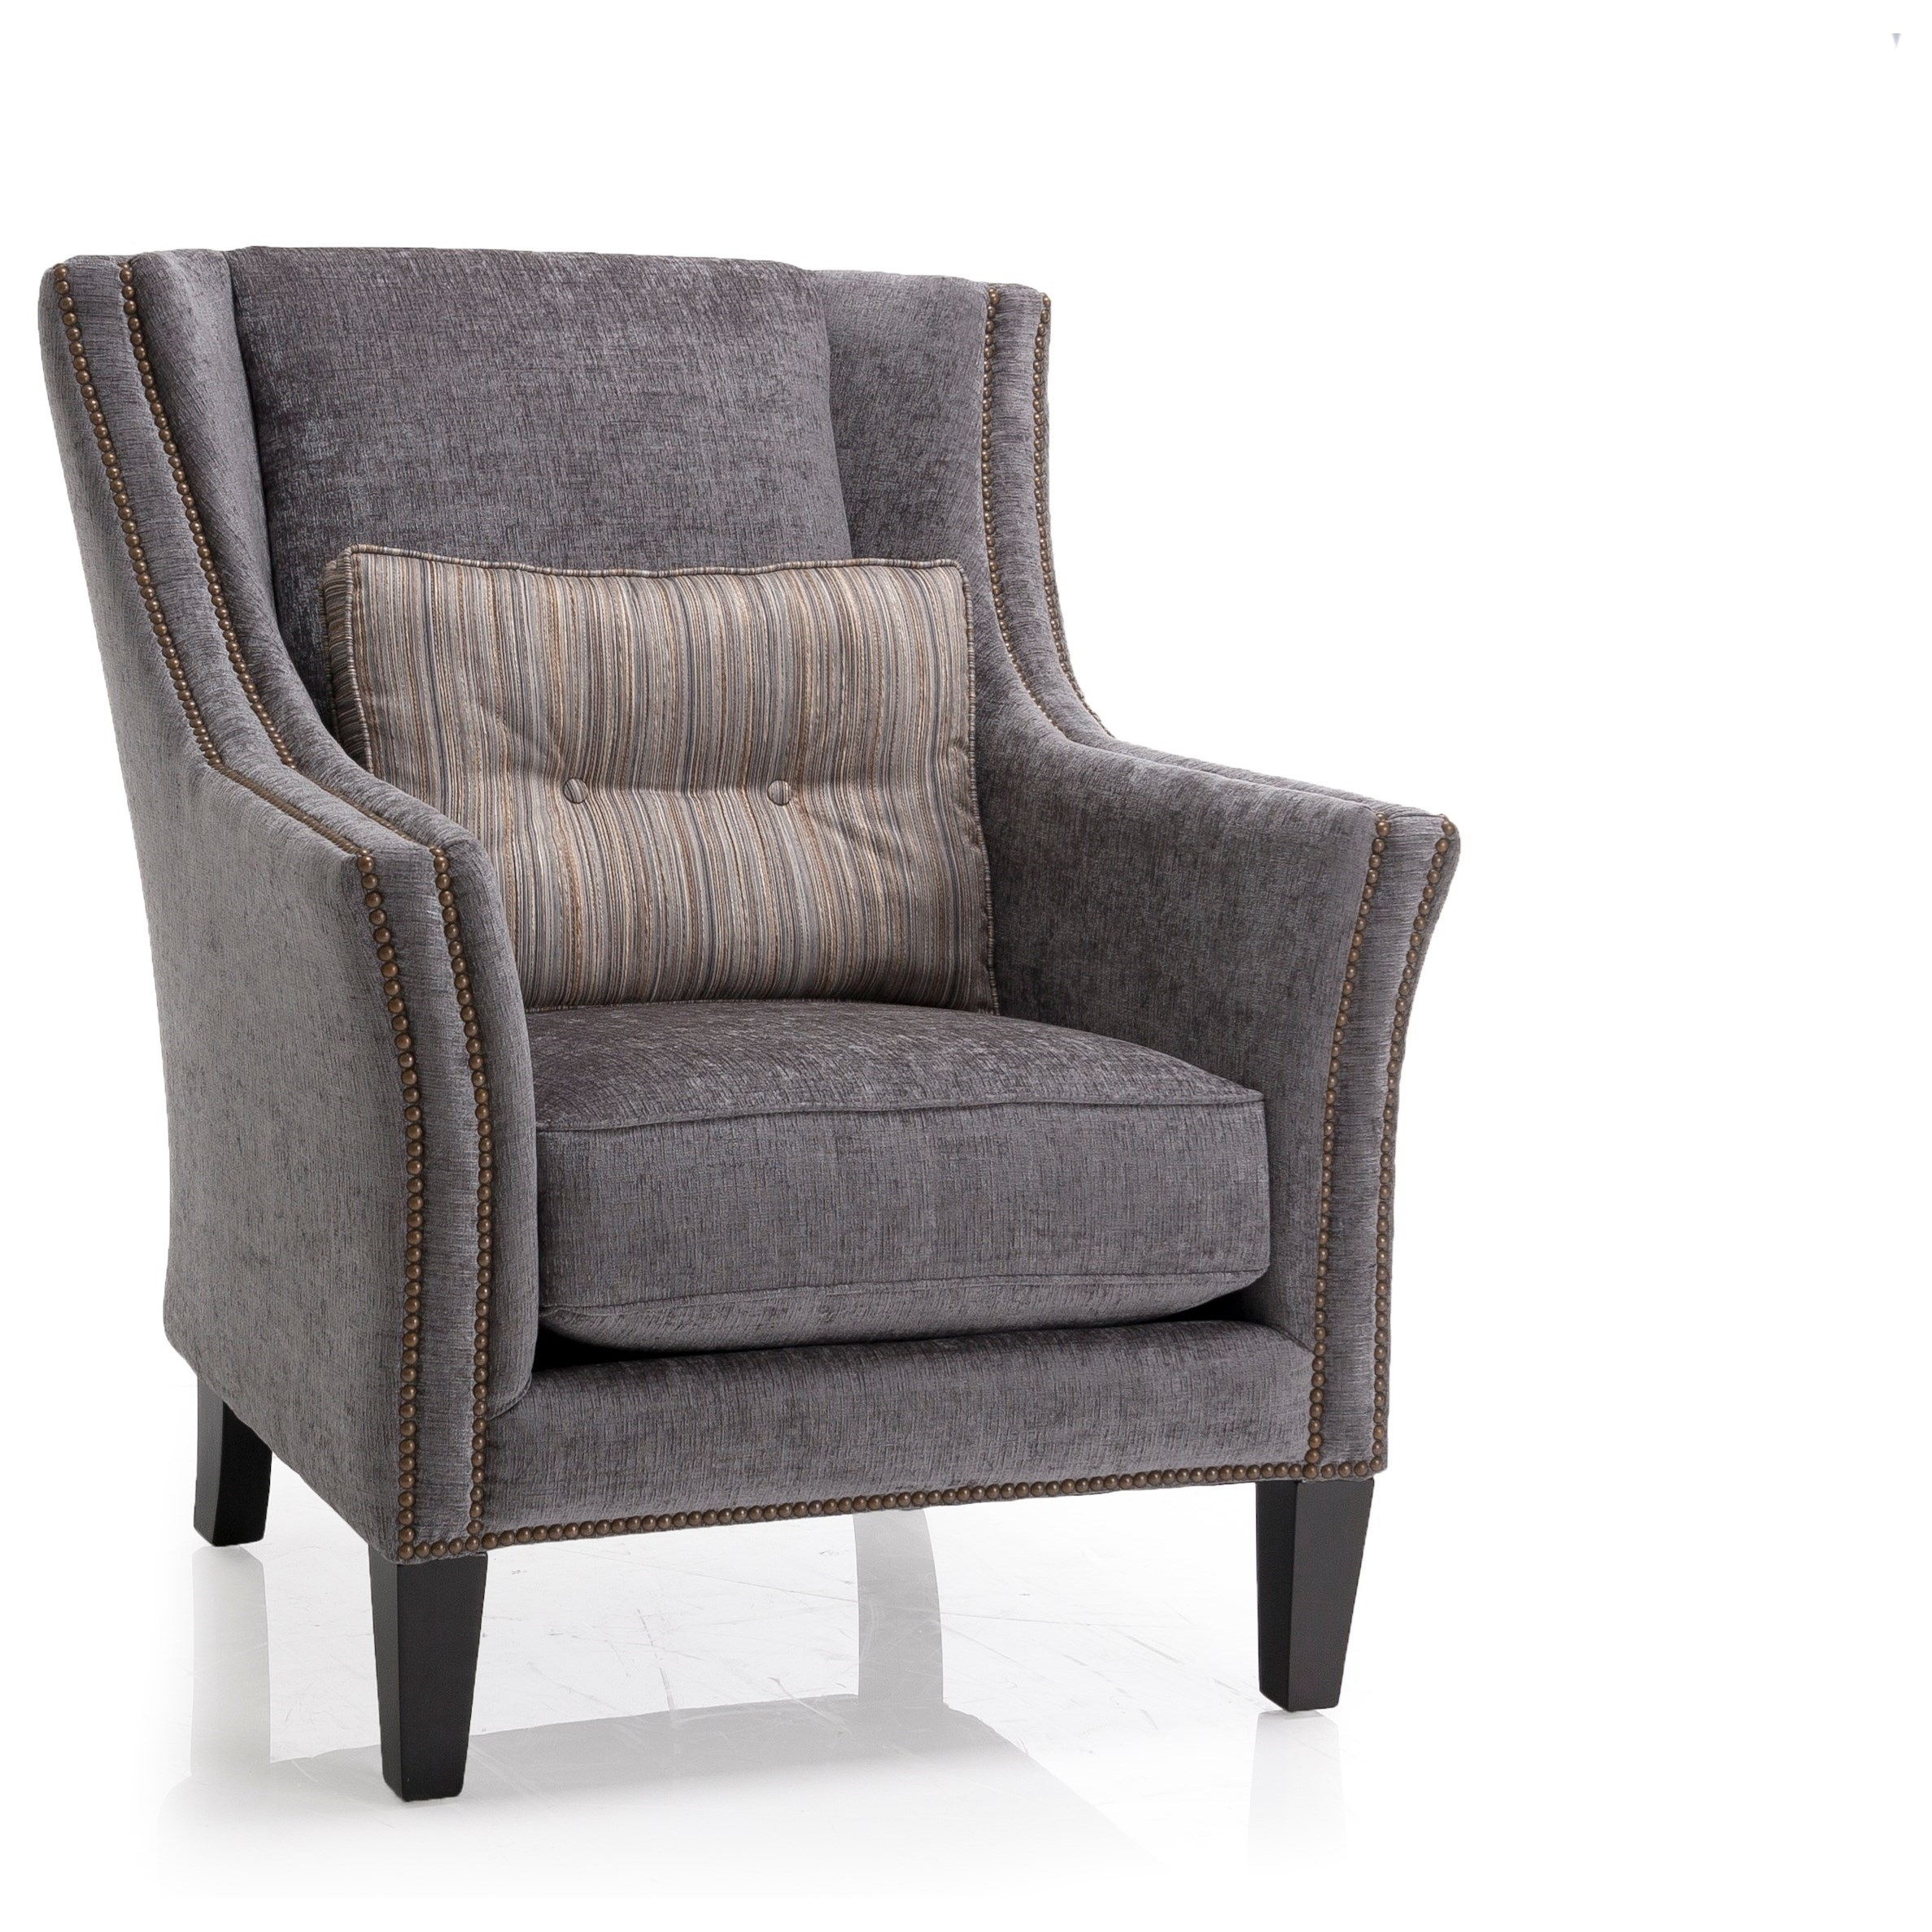 Upholstered Accents Track Arm Chair by Decor-Rest at Stoney Creek Furniture